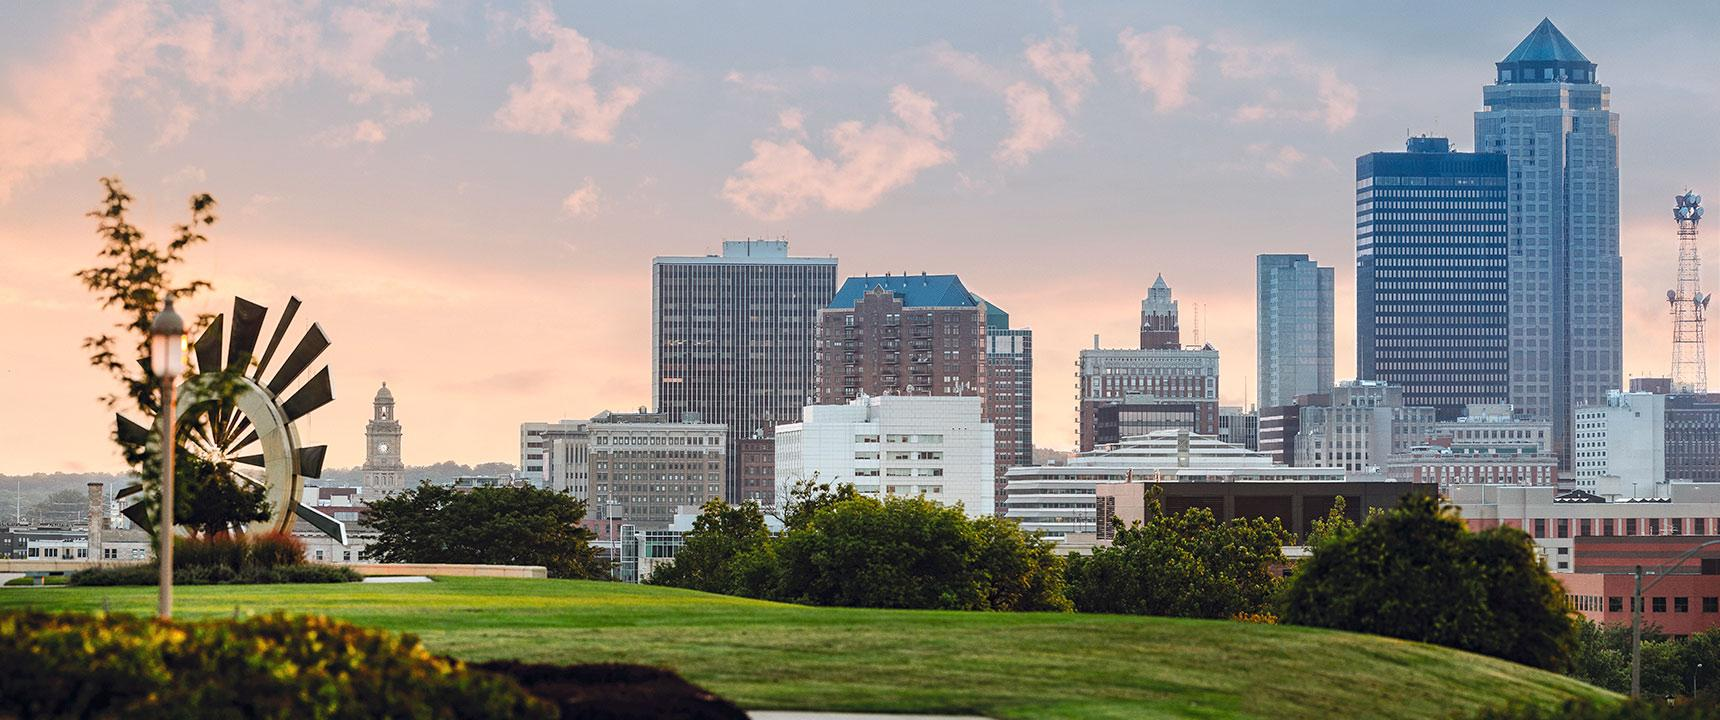 Panoramic view of the Des Moines, Iowa skyline.